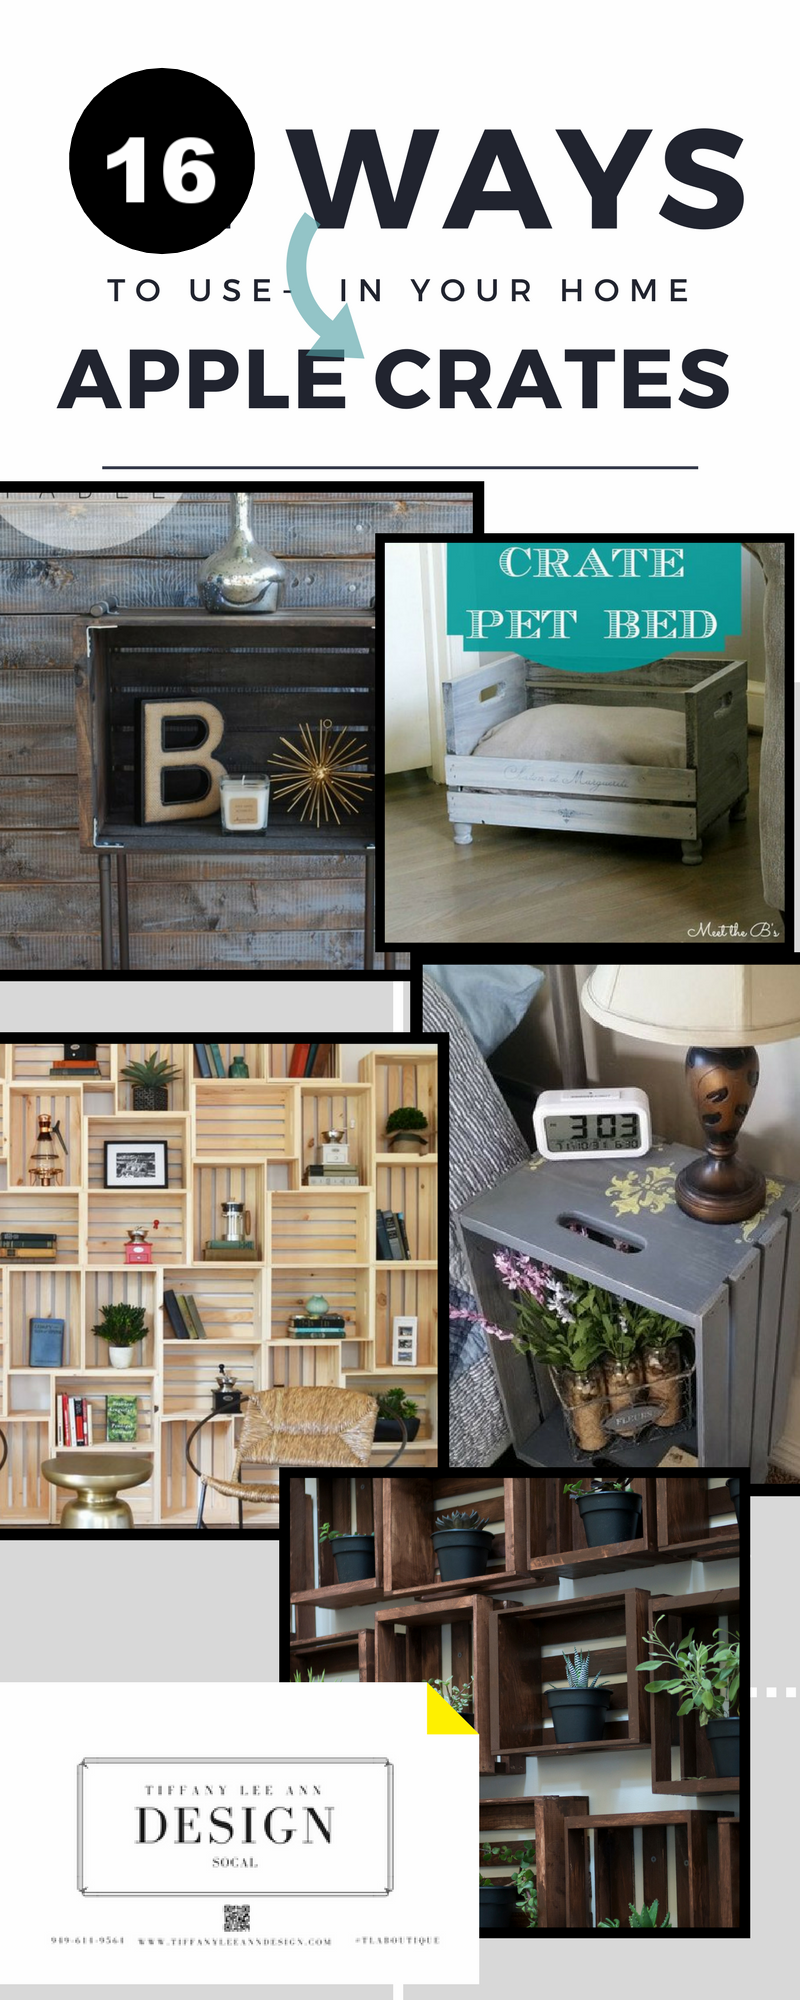 21 ways to use apple crates